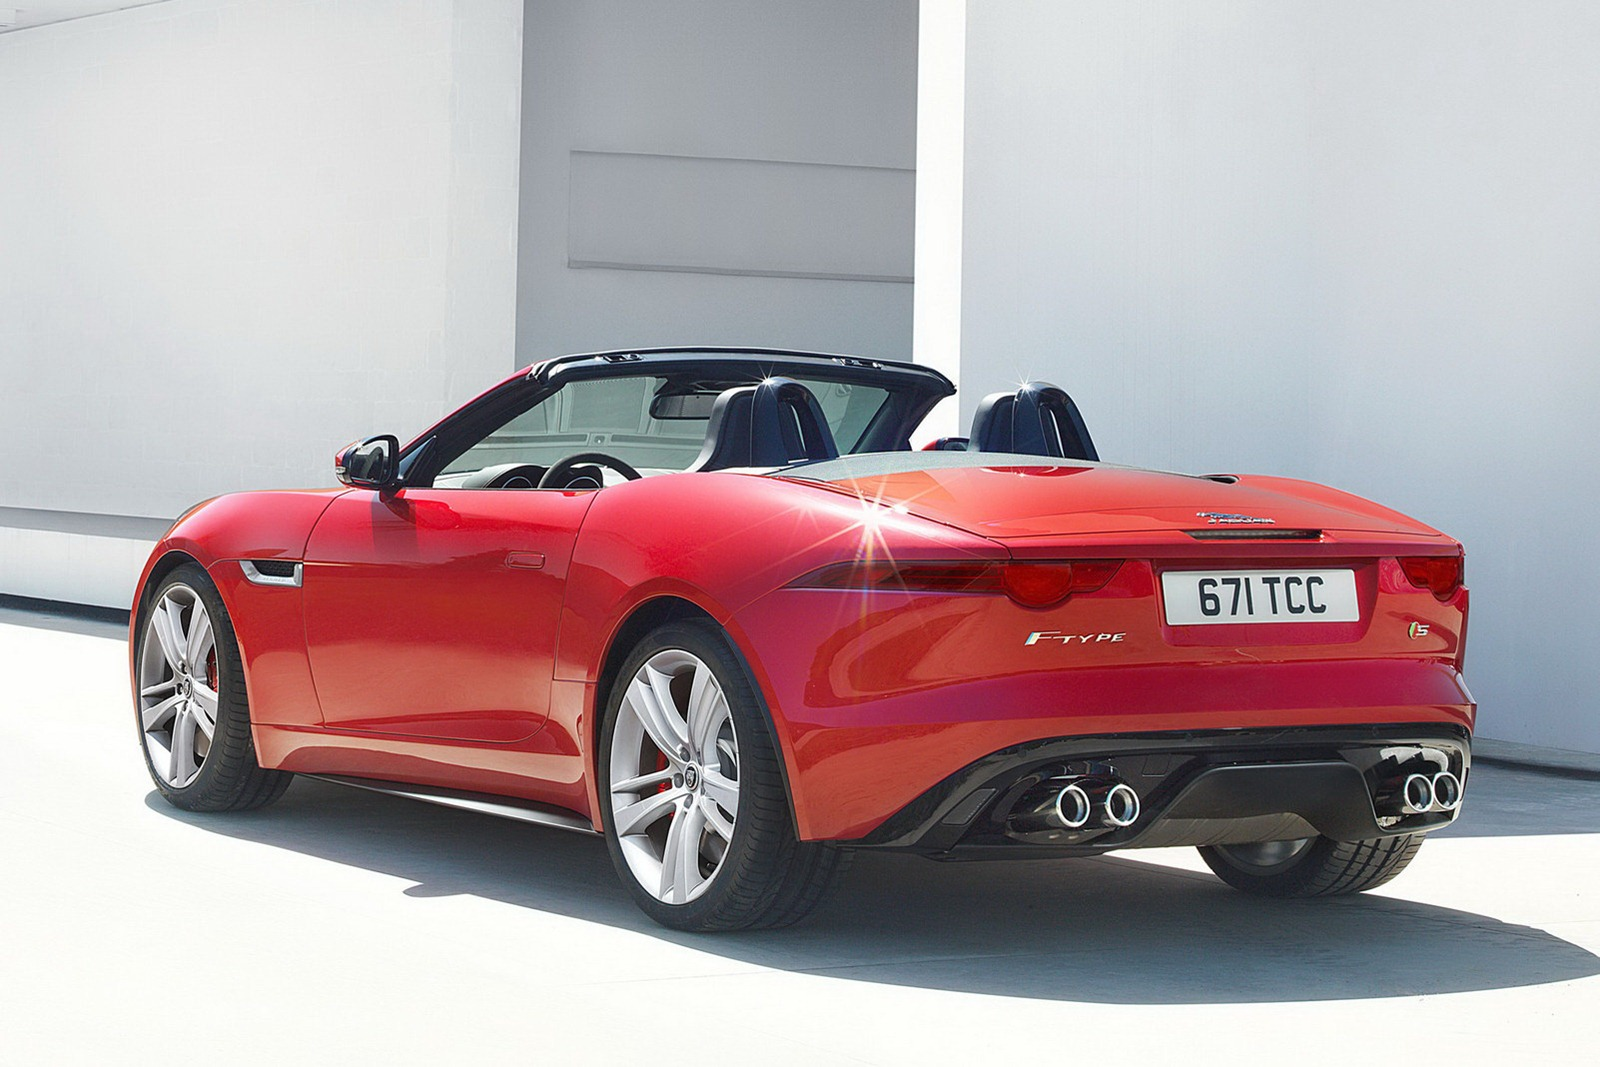 2013 Jaguar F Type 3 Jaguar launches 2013 F Type models at the Paris motor show